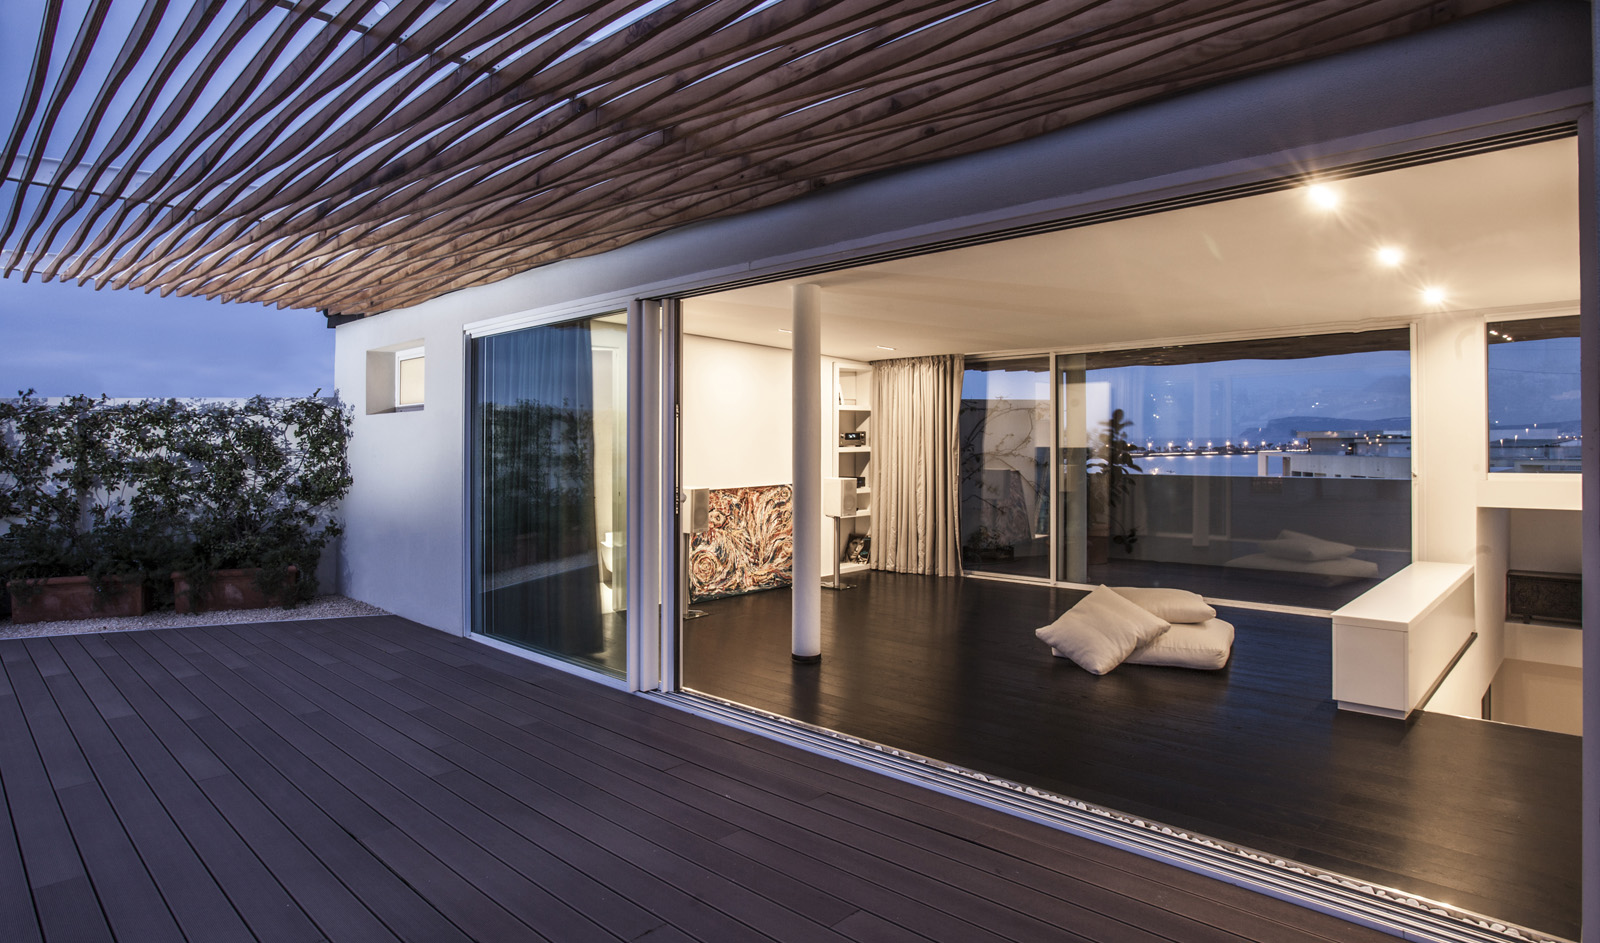 Casa di Sandro, Cagliari, Sardinia, Italy<br />House extension and interior design